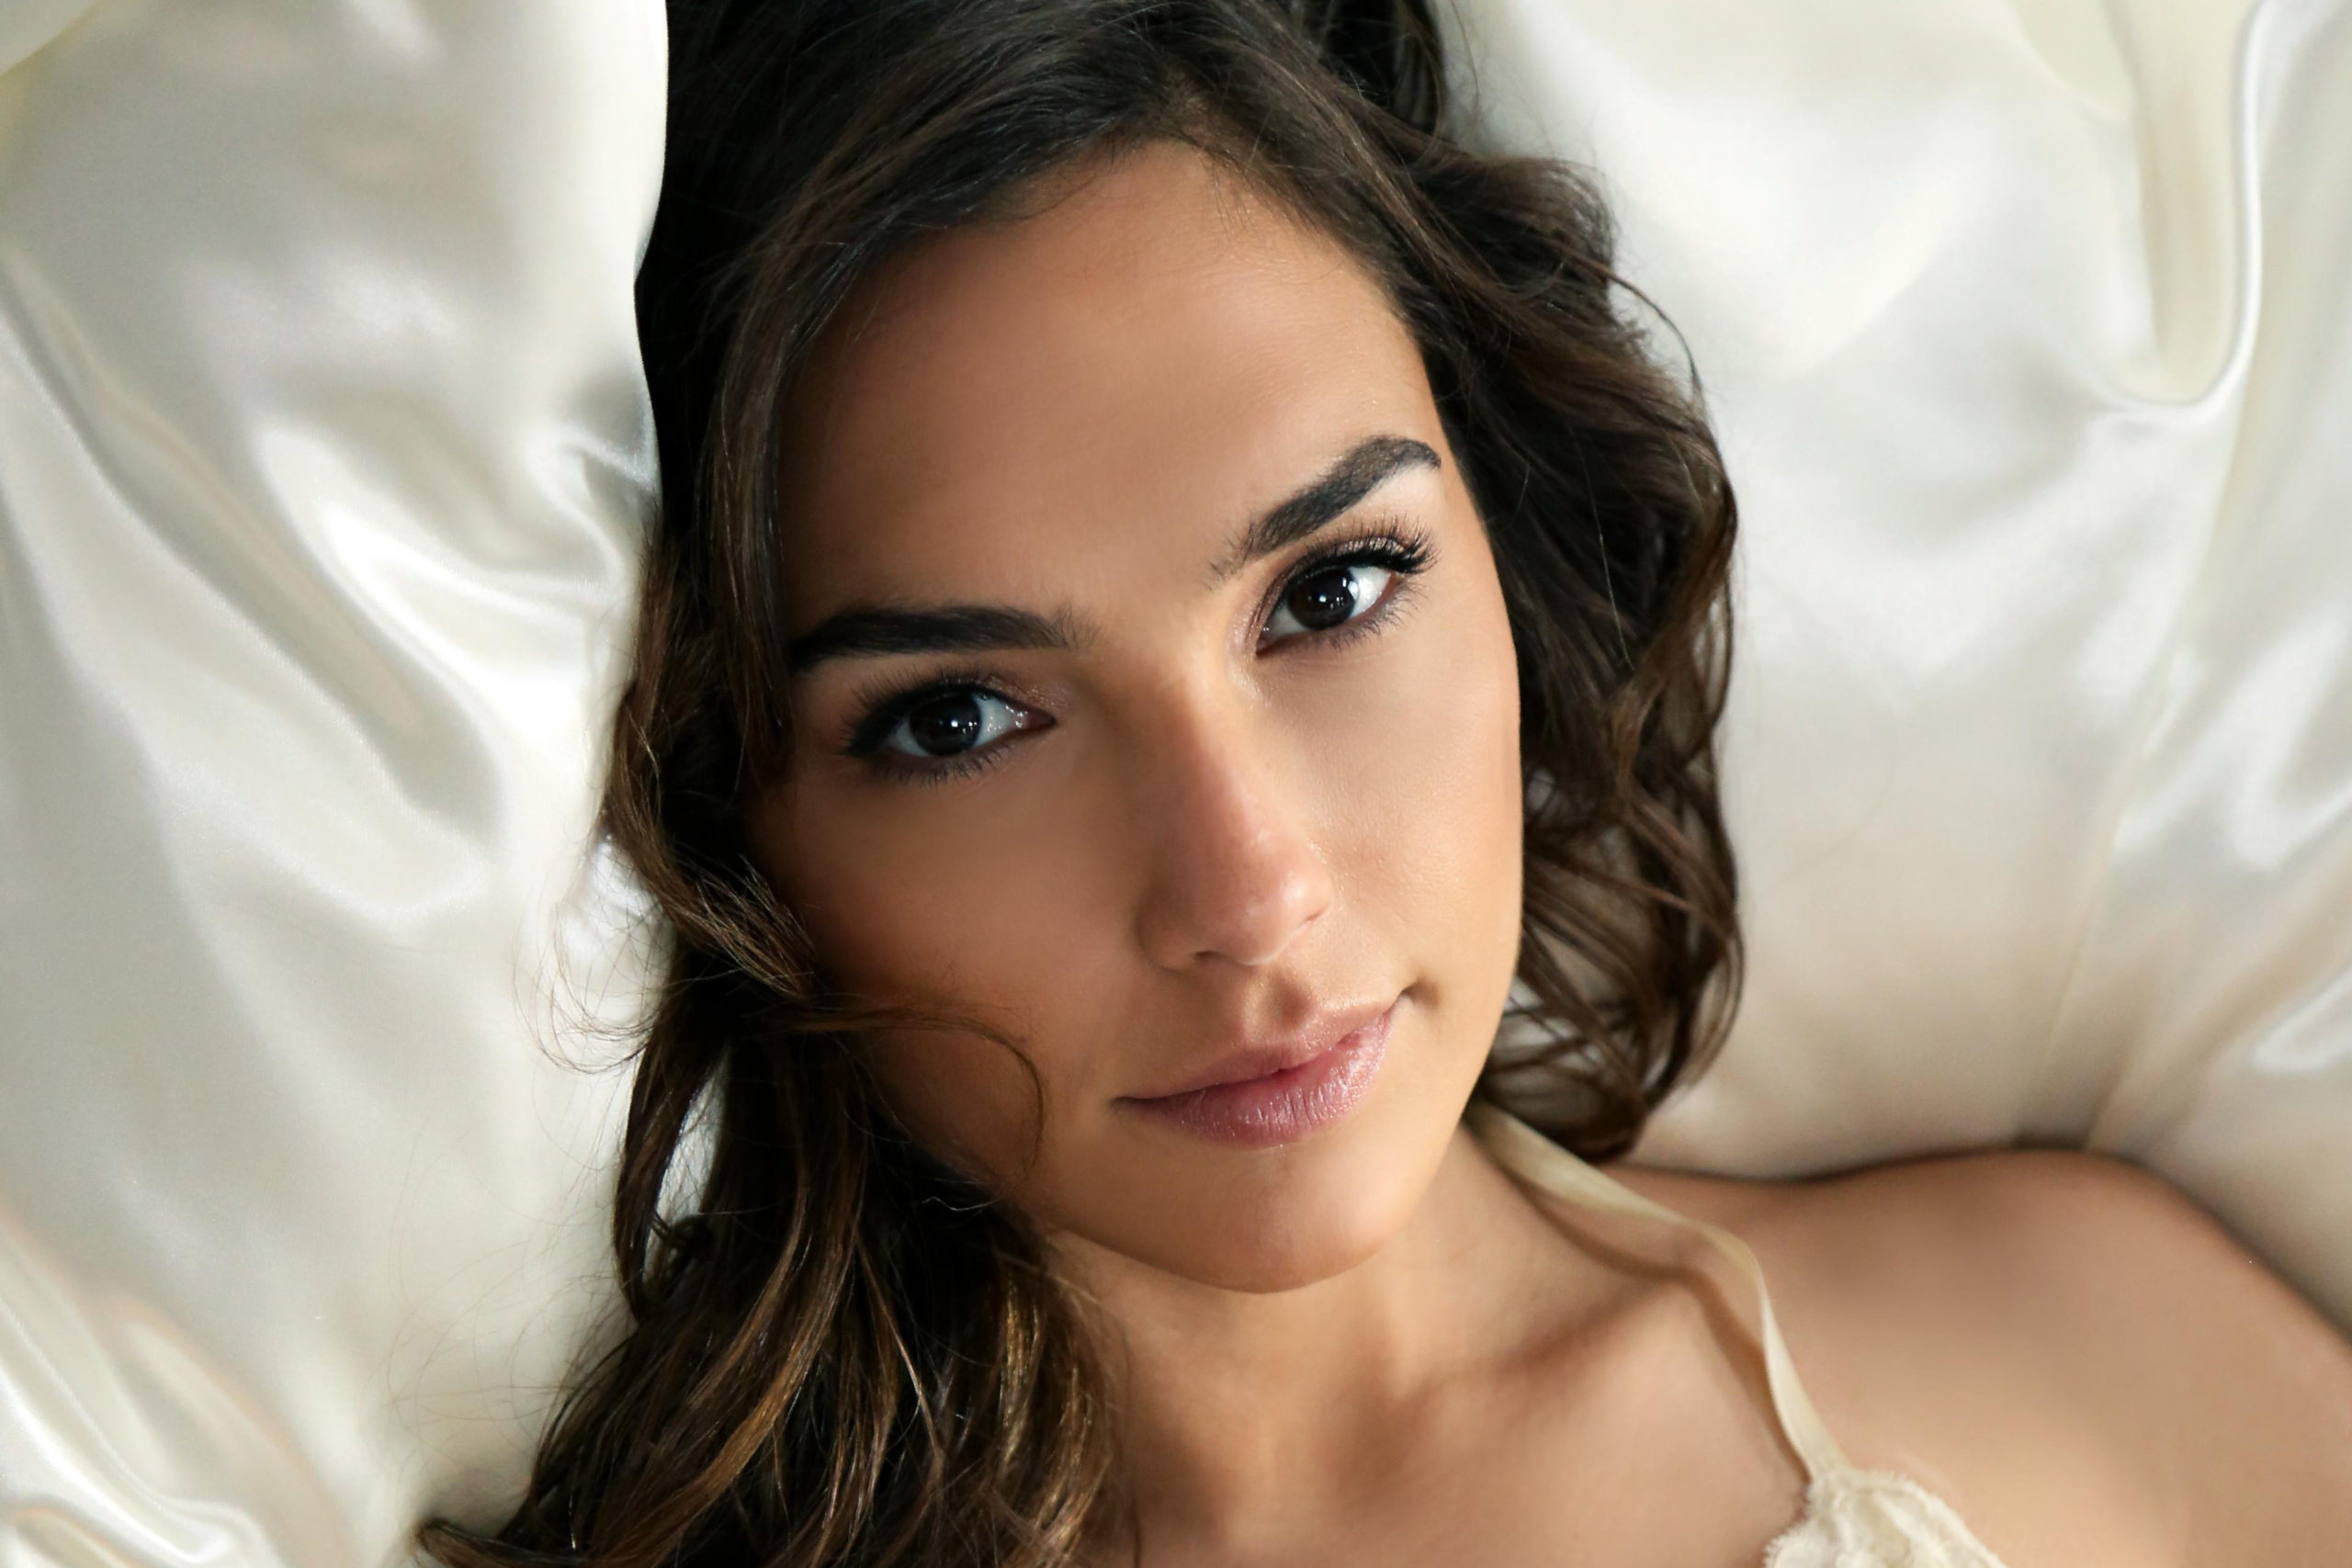 Gal Gadot Bed Pose scaled - Gal Gadot Net Worth, Pics, Wallpapers, Career and Biography